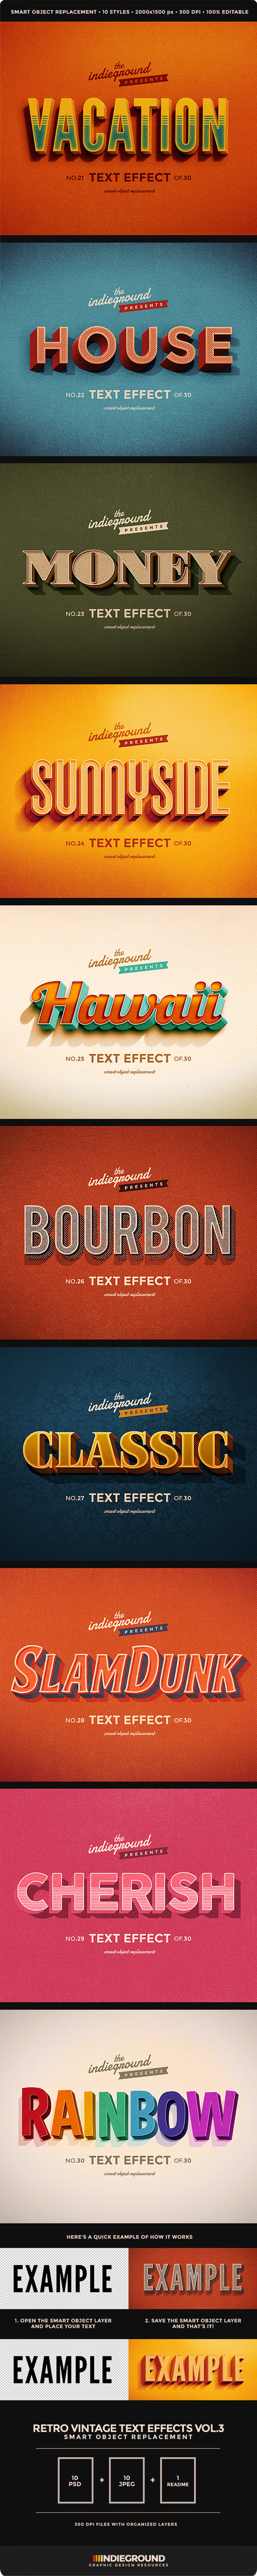 Retro Vintage Text Effects Vol. 3